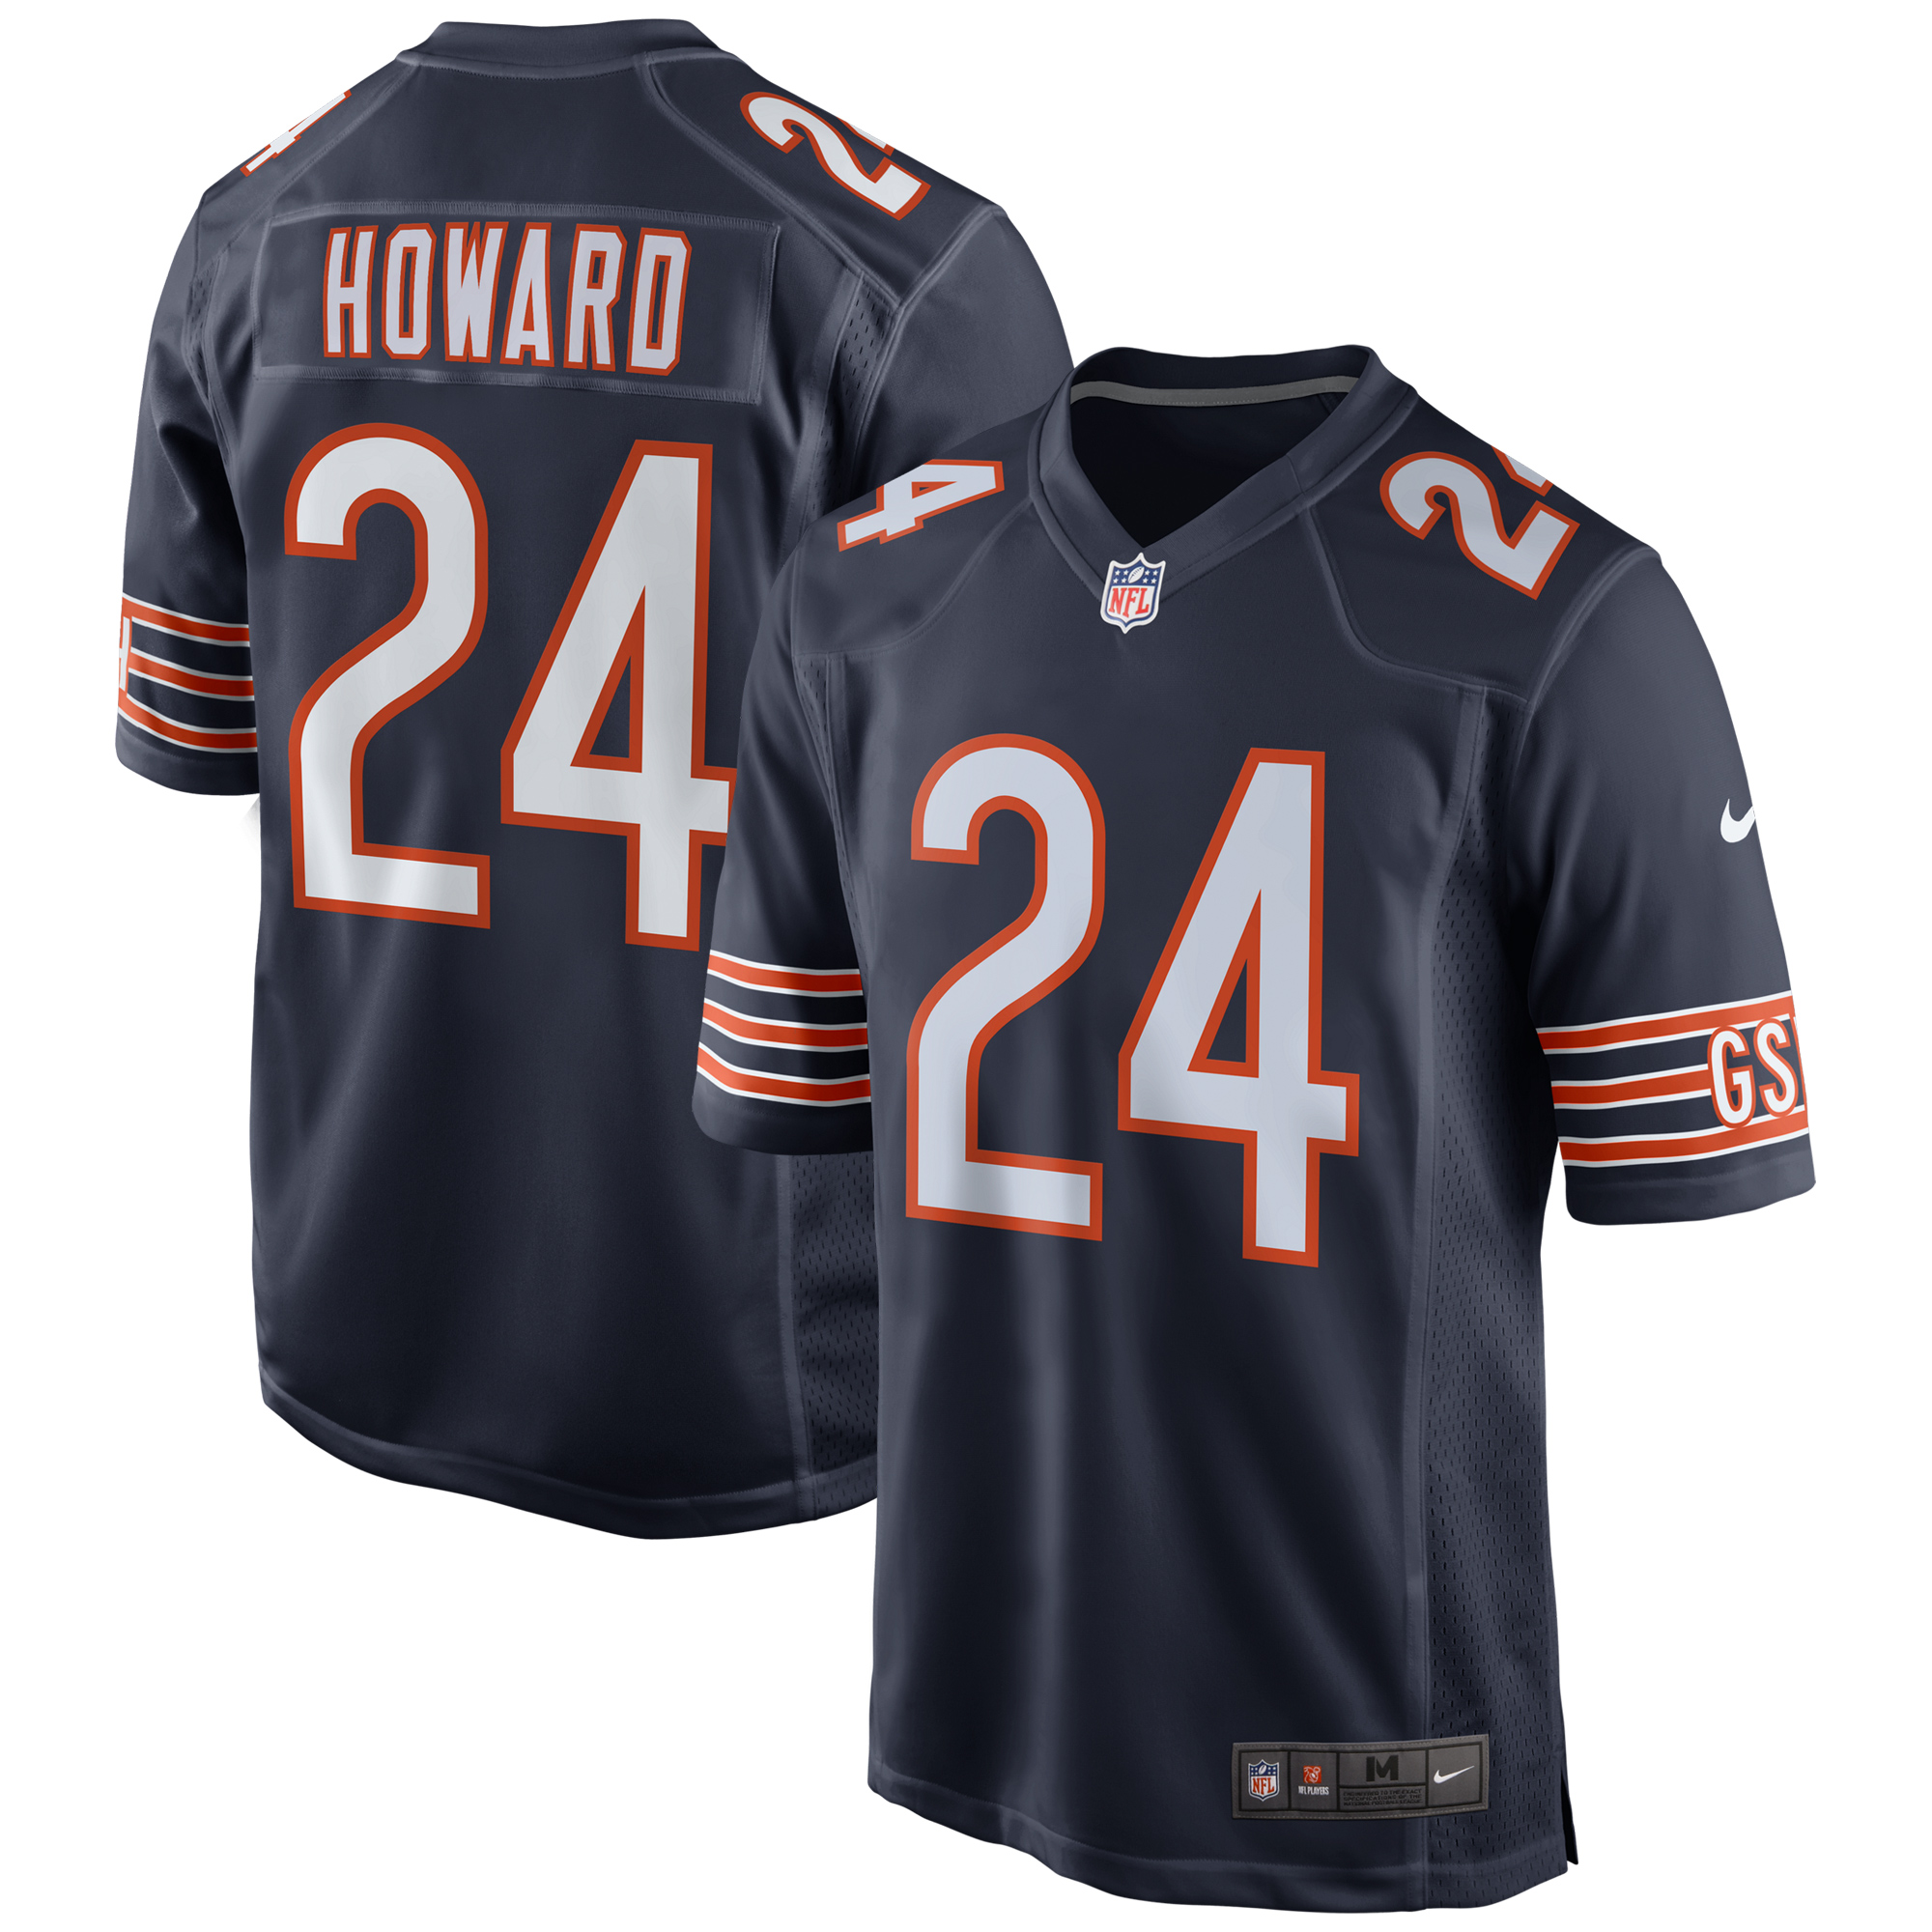 canada buy chicago bears jersey 9002f 328db